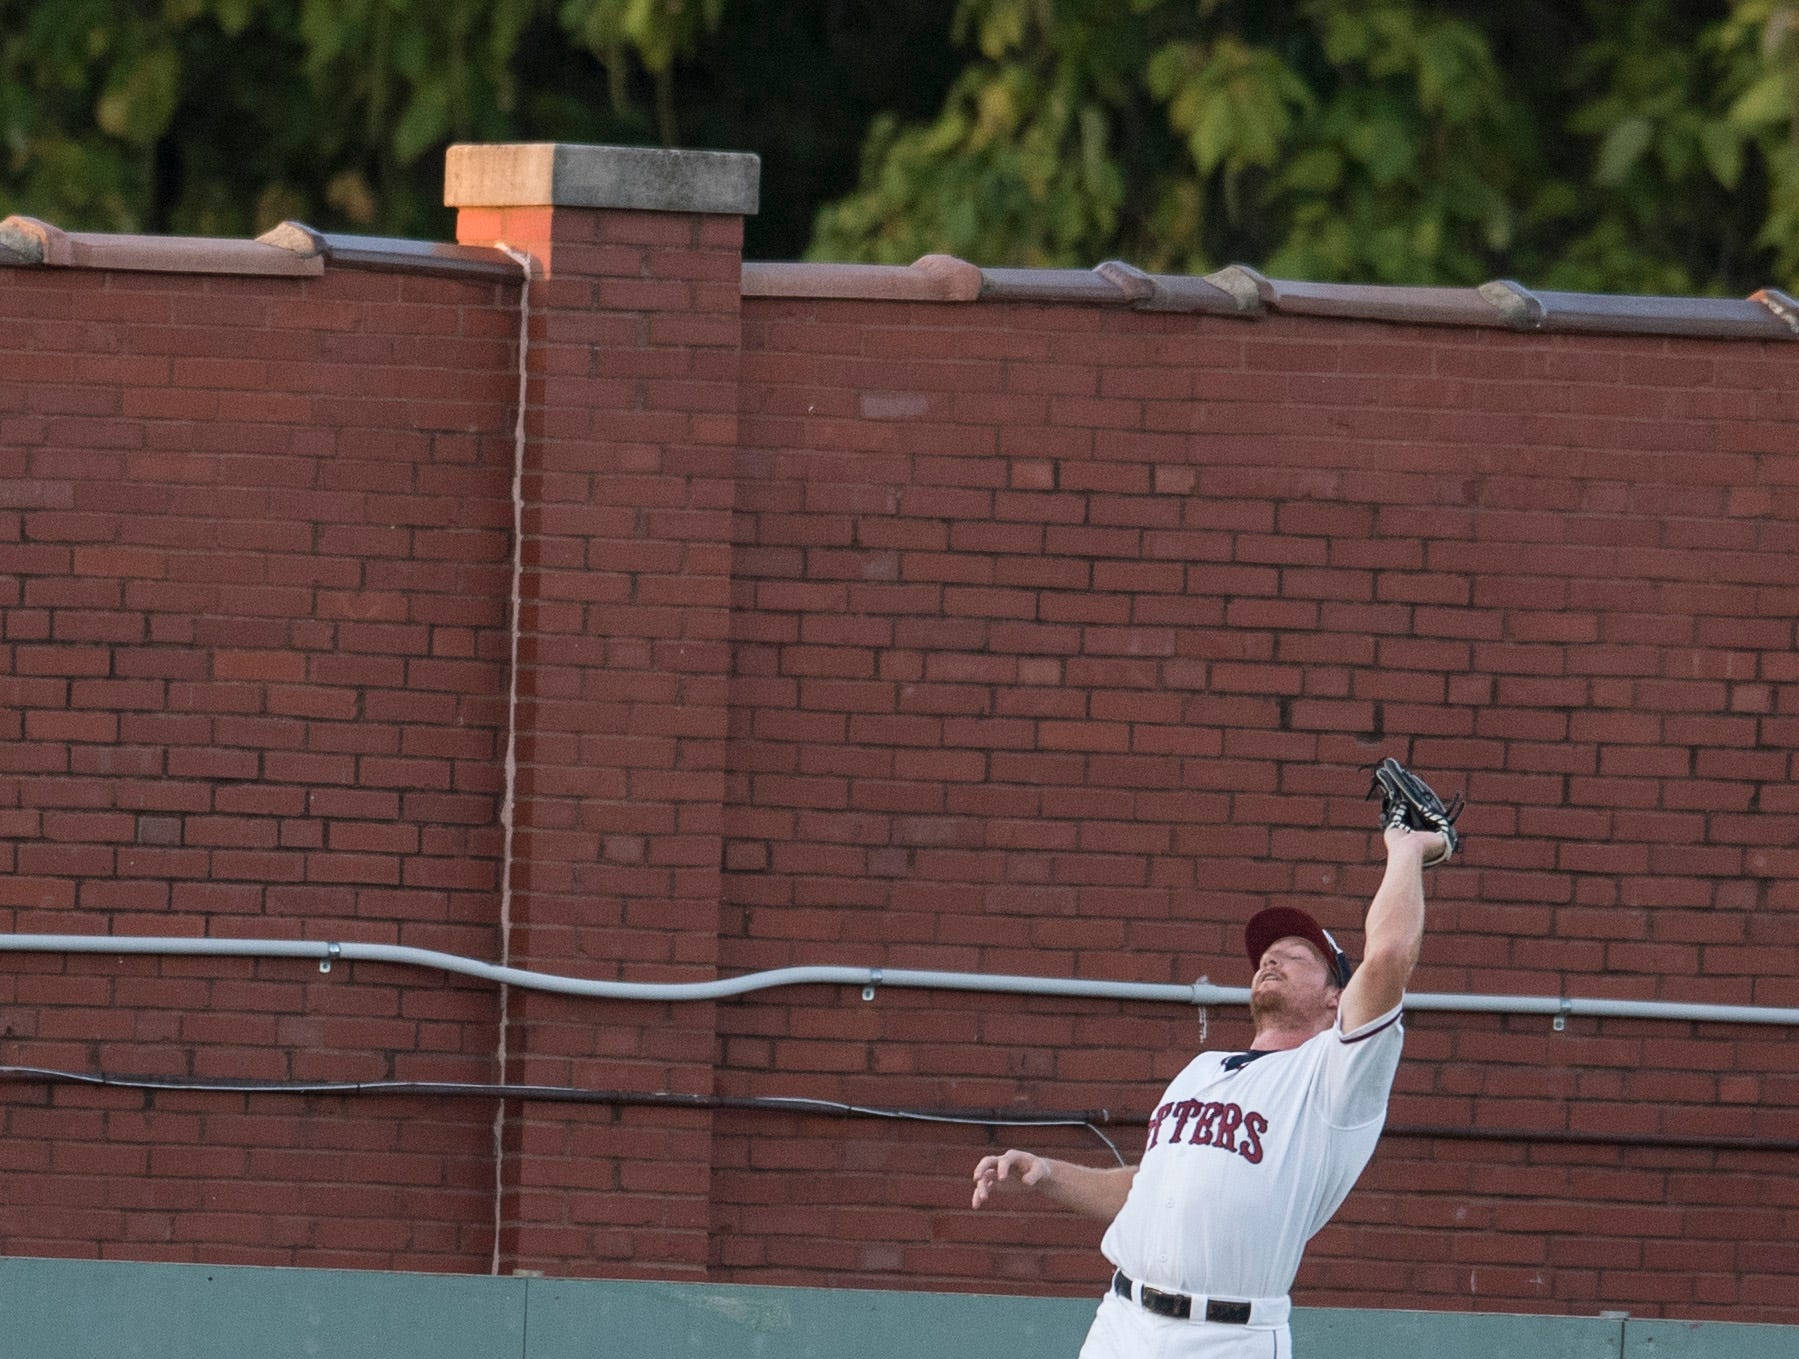 Evansville's Tyler Vail (36) catches a pop fly during game one of the Frontier League Division Series at Bosse Field against the Washington Wild Things Tuesday, September 4, 2018.